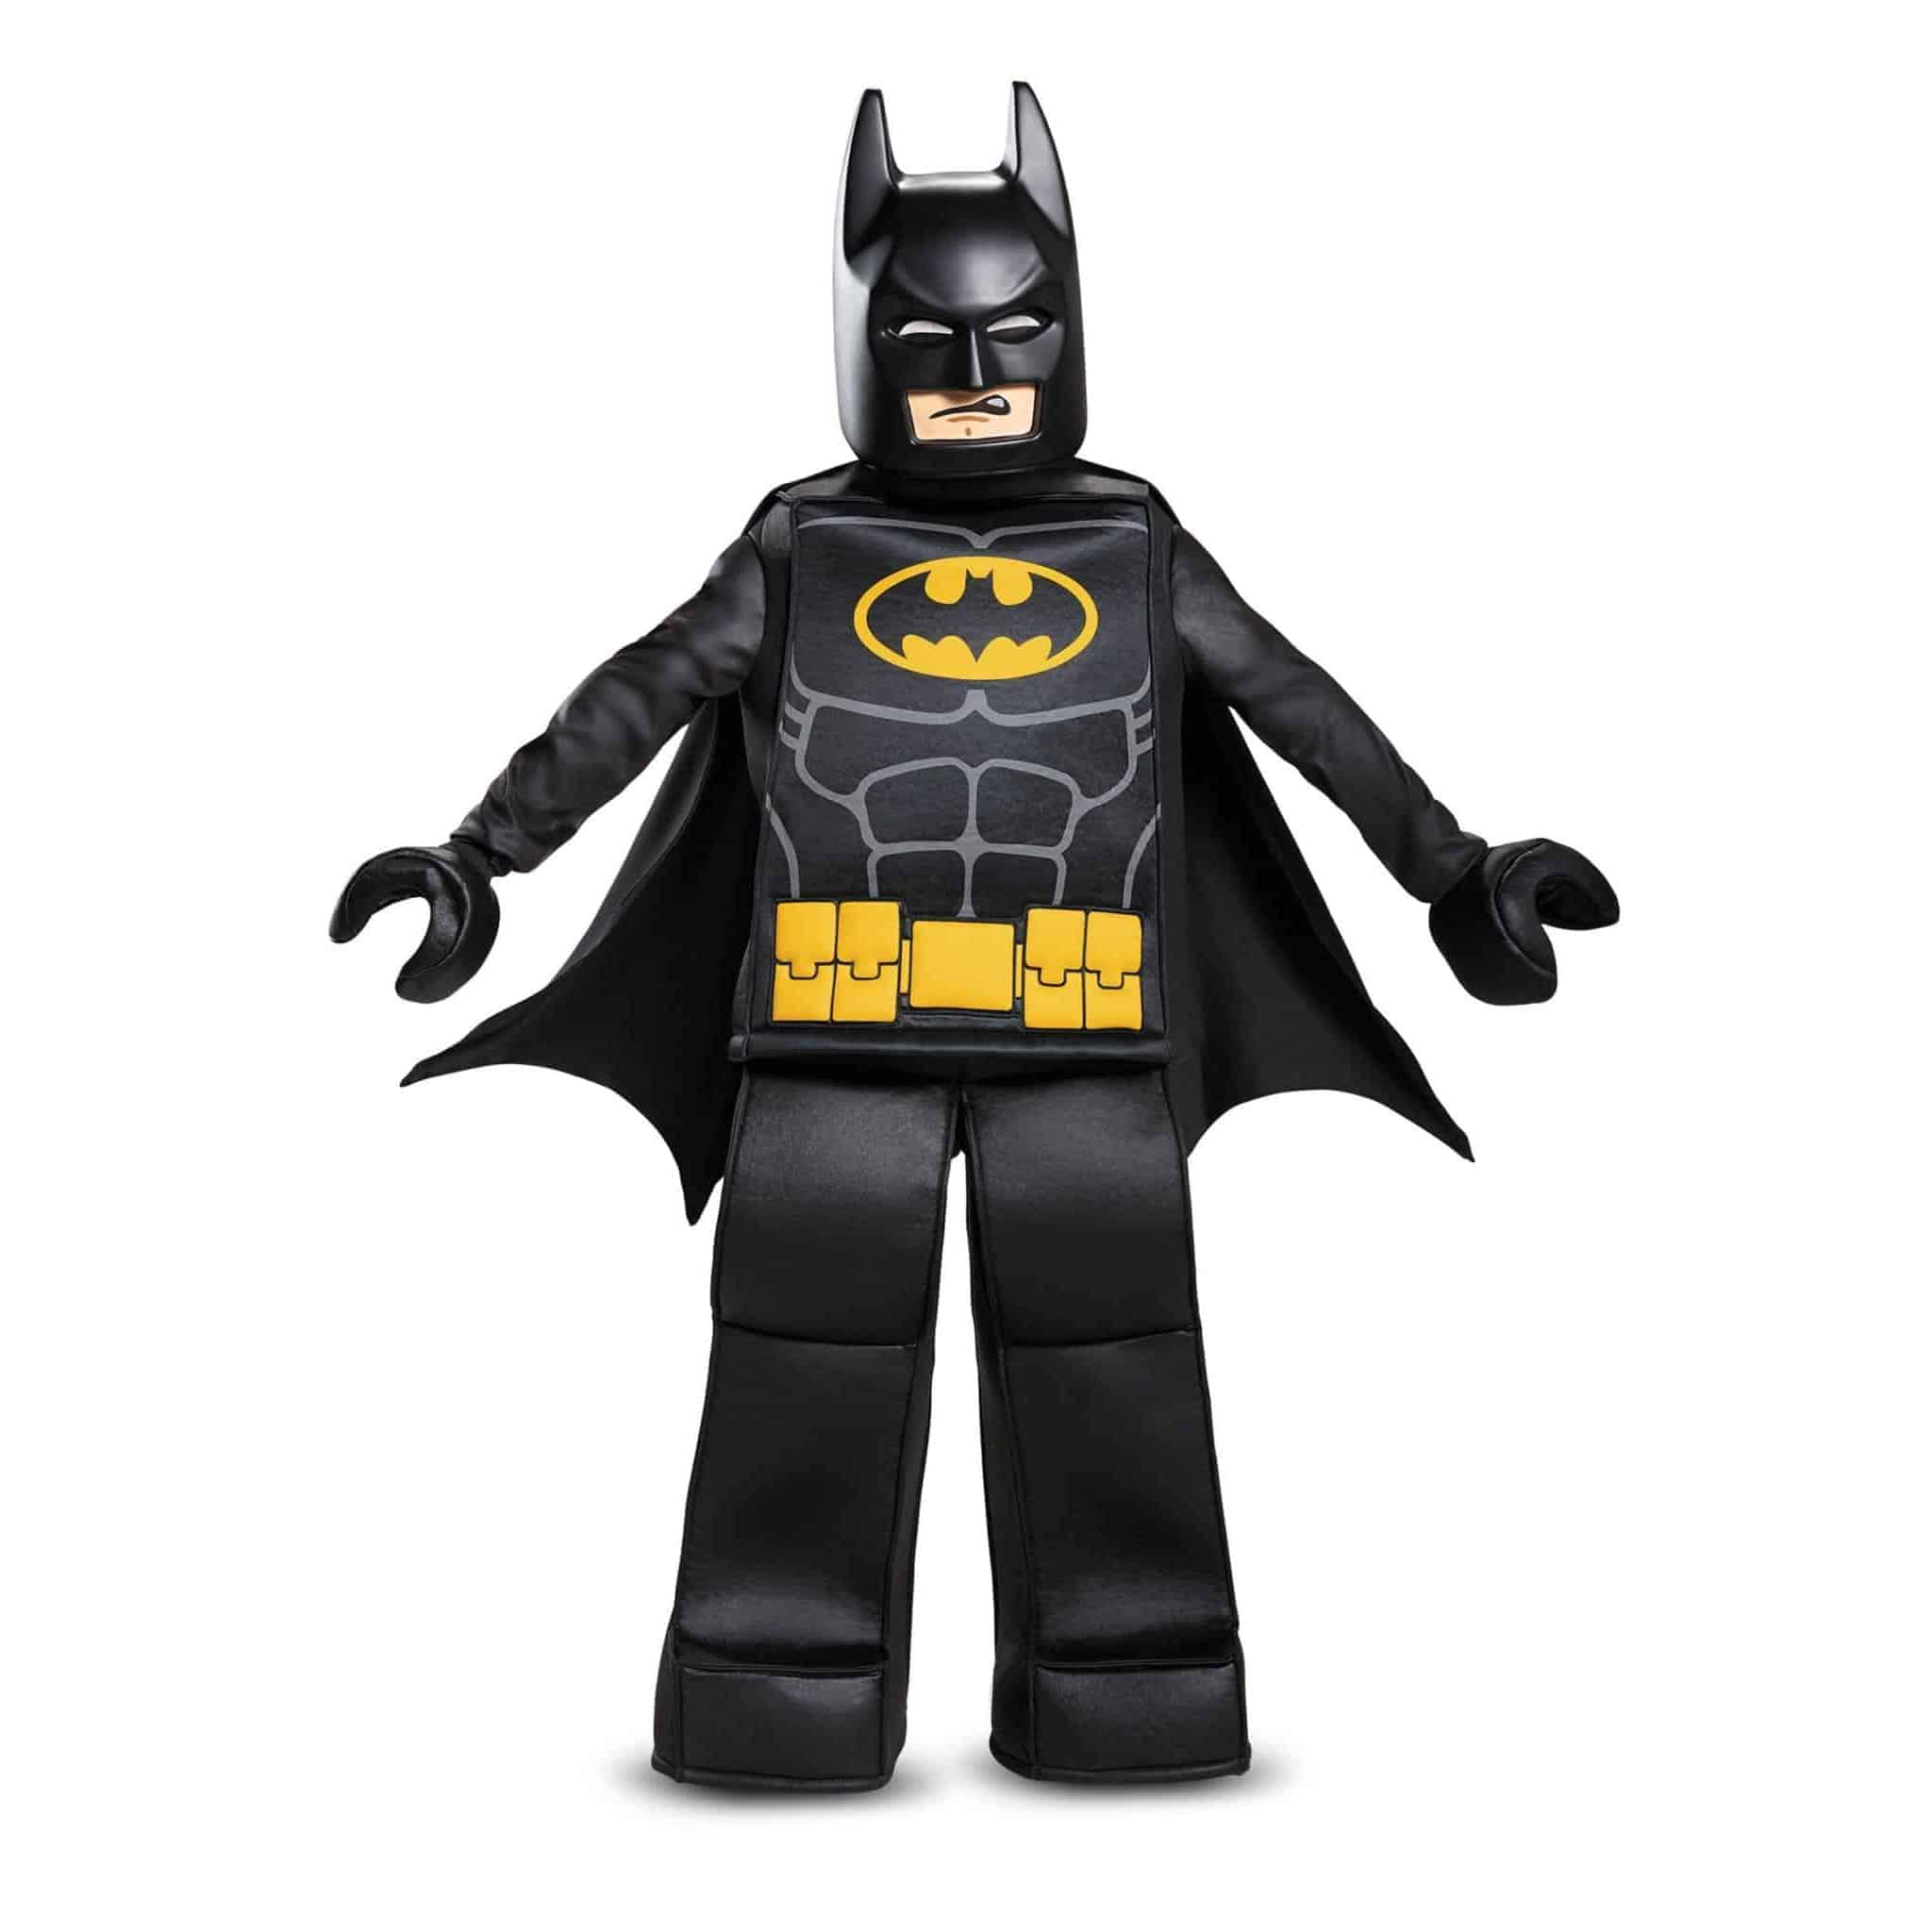 LEGO Batman Movie Costumes For Halloween